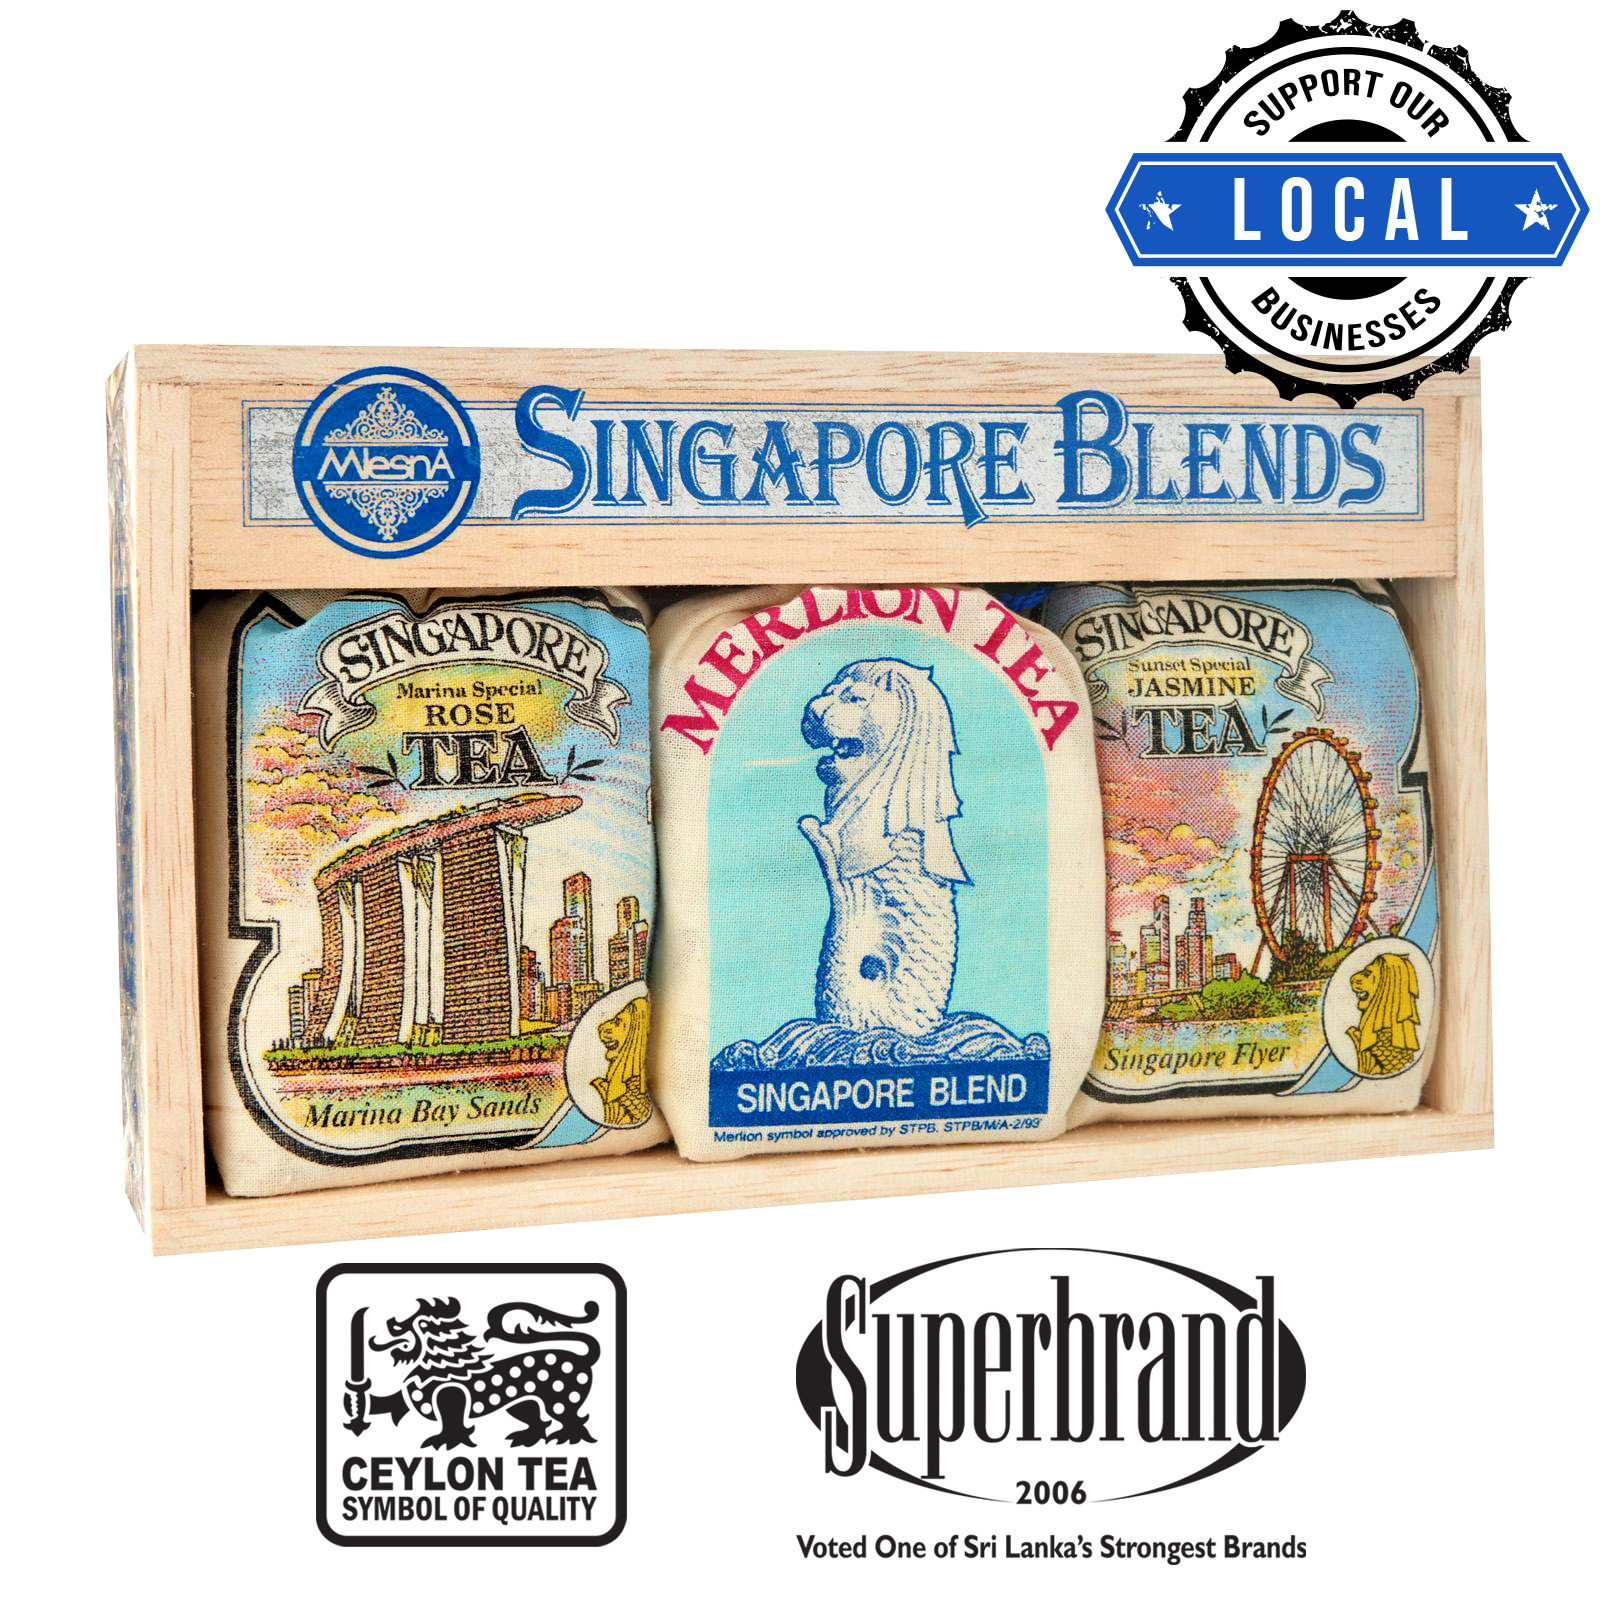 Mlesna Tea Gift Box - Singapore Blends MBS Assorted